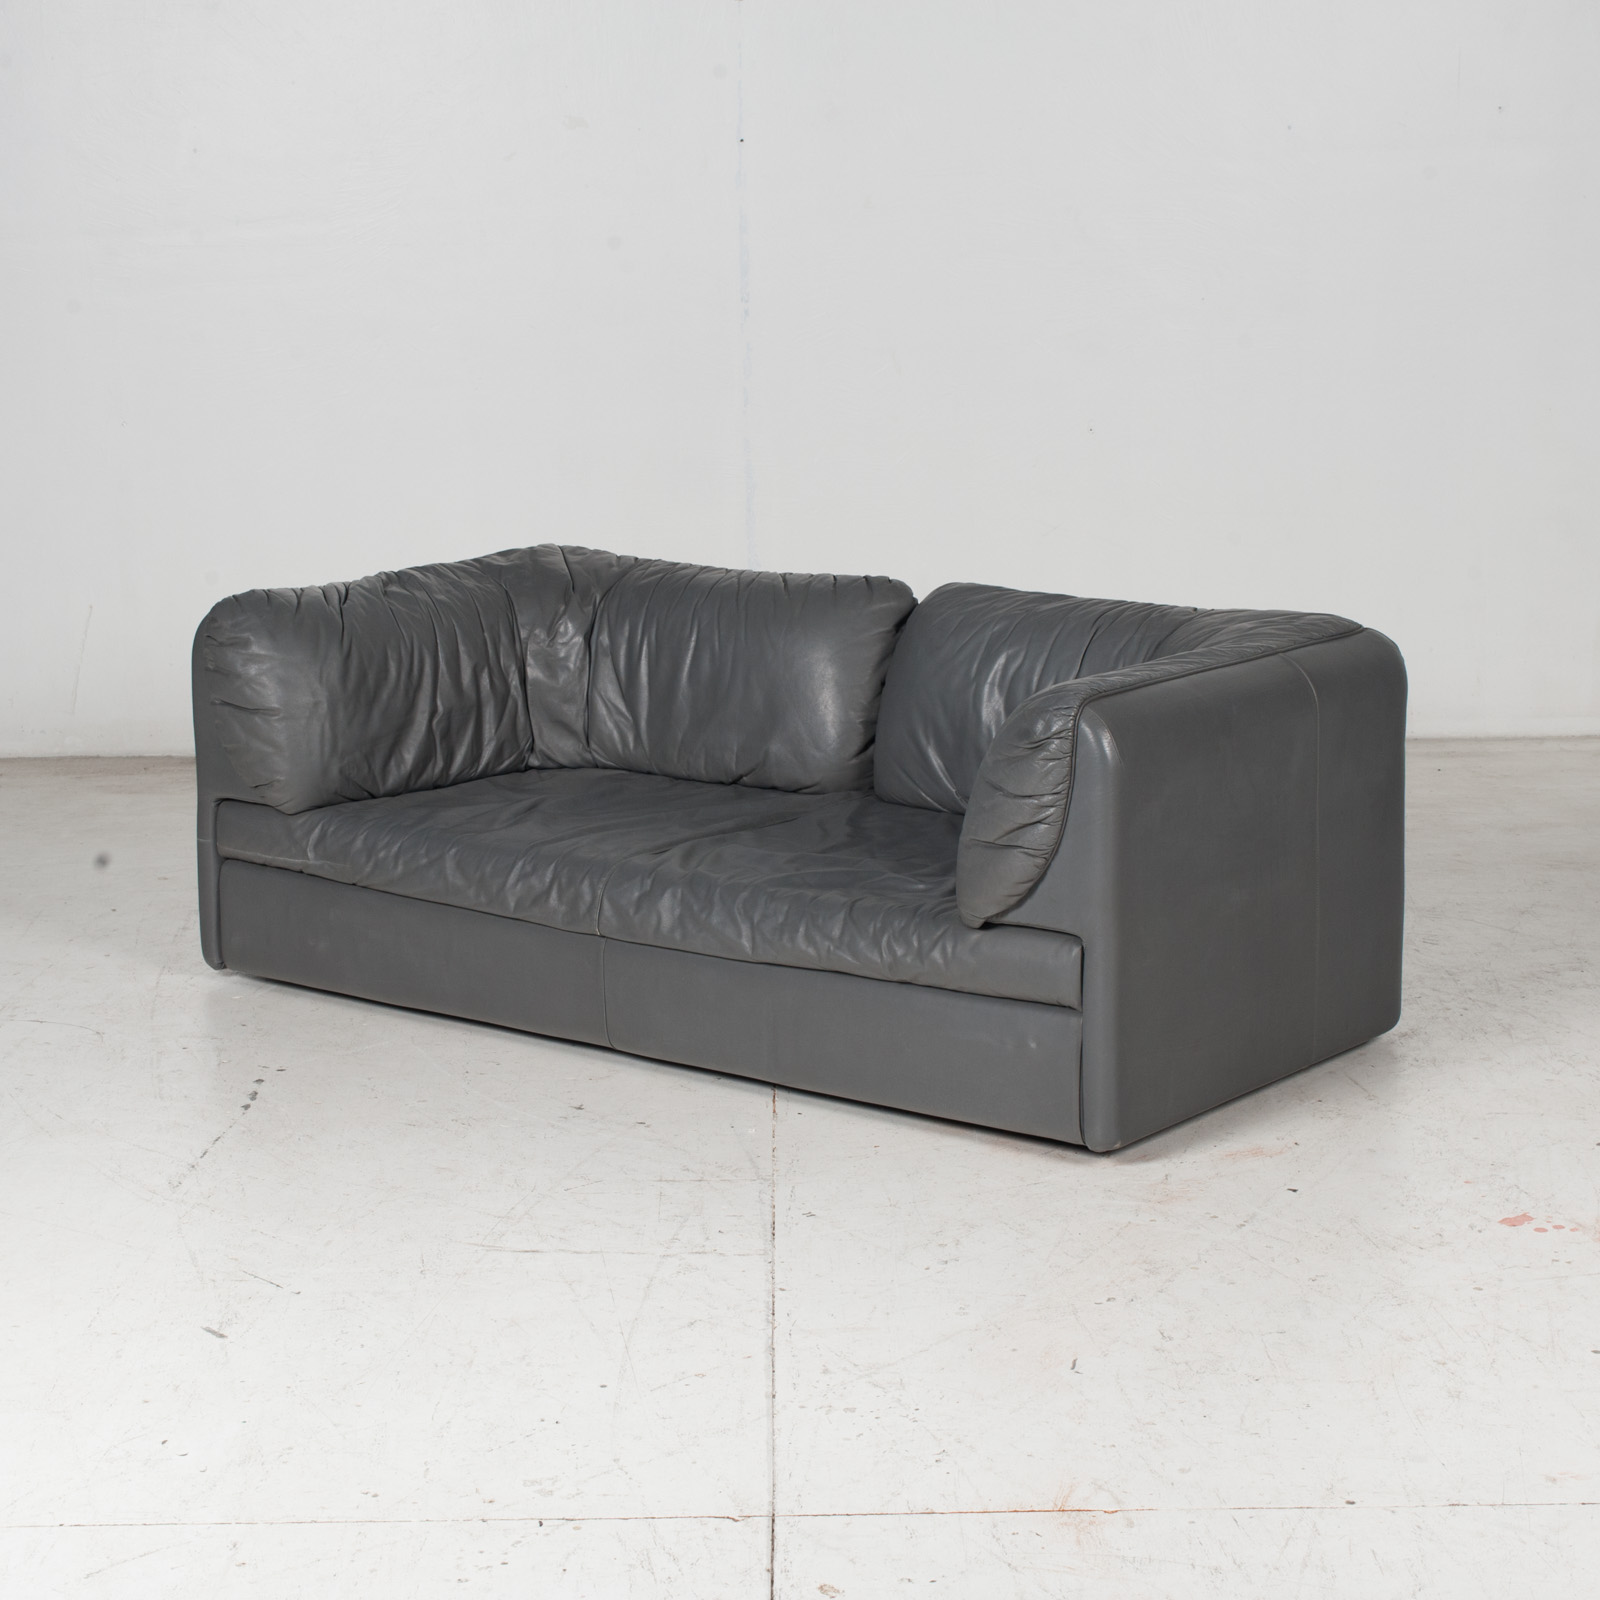 Model Pacific 2.5 Seat Sofa By Cini Boeri For Arflex In Grey Leather, 1980s, Italy 4